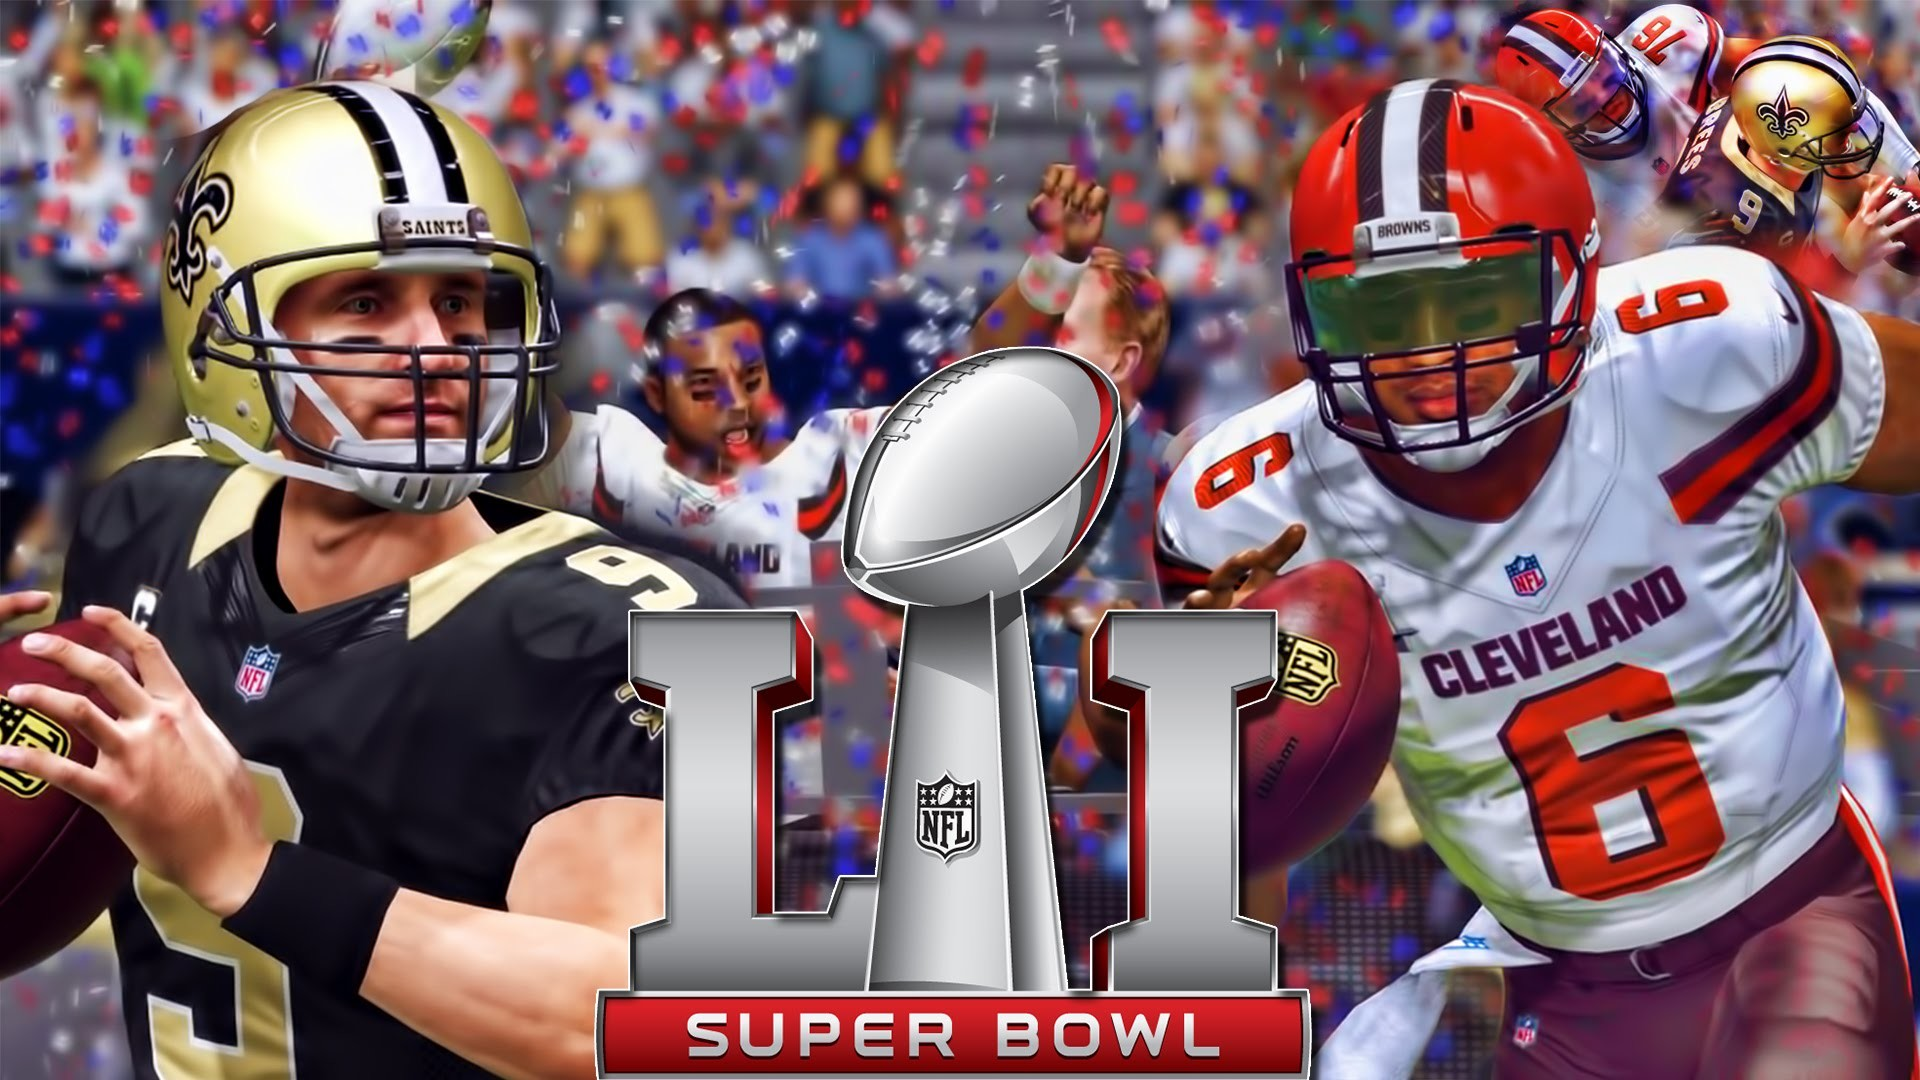 2018 Super Bowl 51 Wallpapers (72+